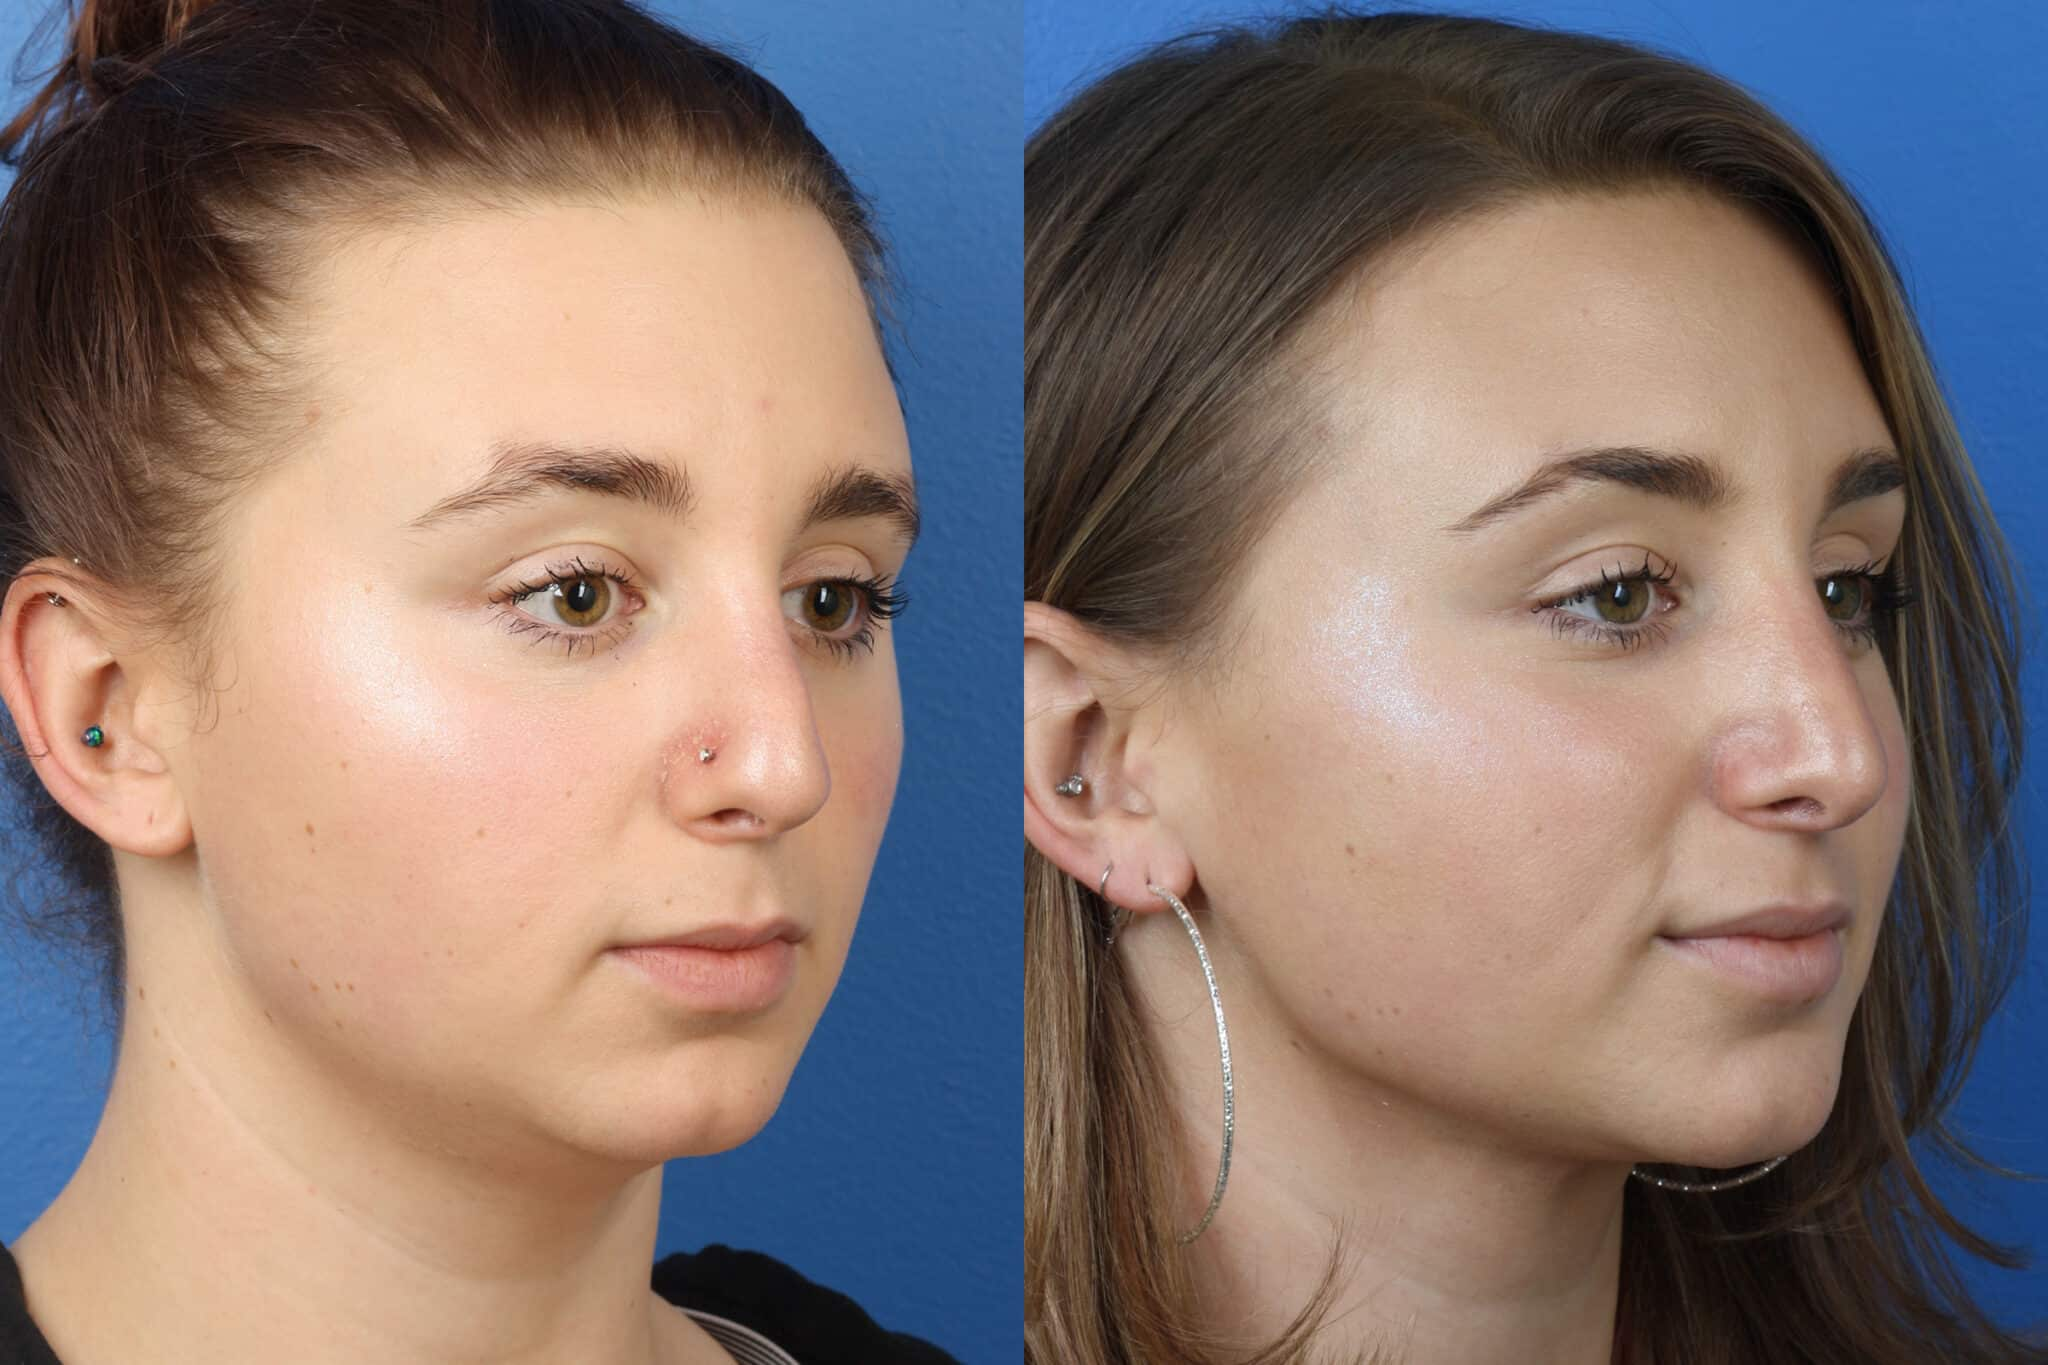 Rhinoplasty to Correct Nasal Bridge and Tip by Dr. Miller